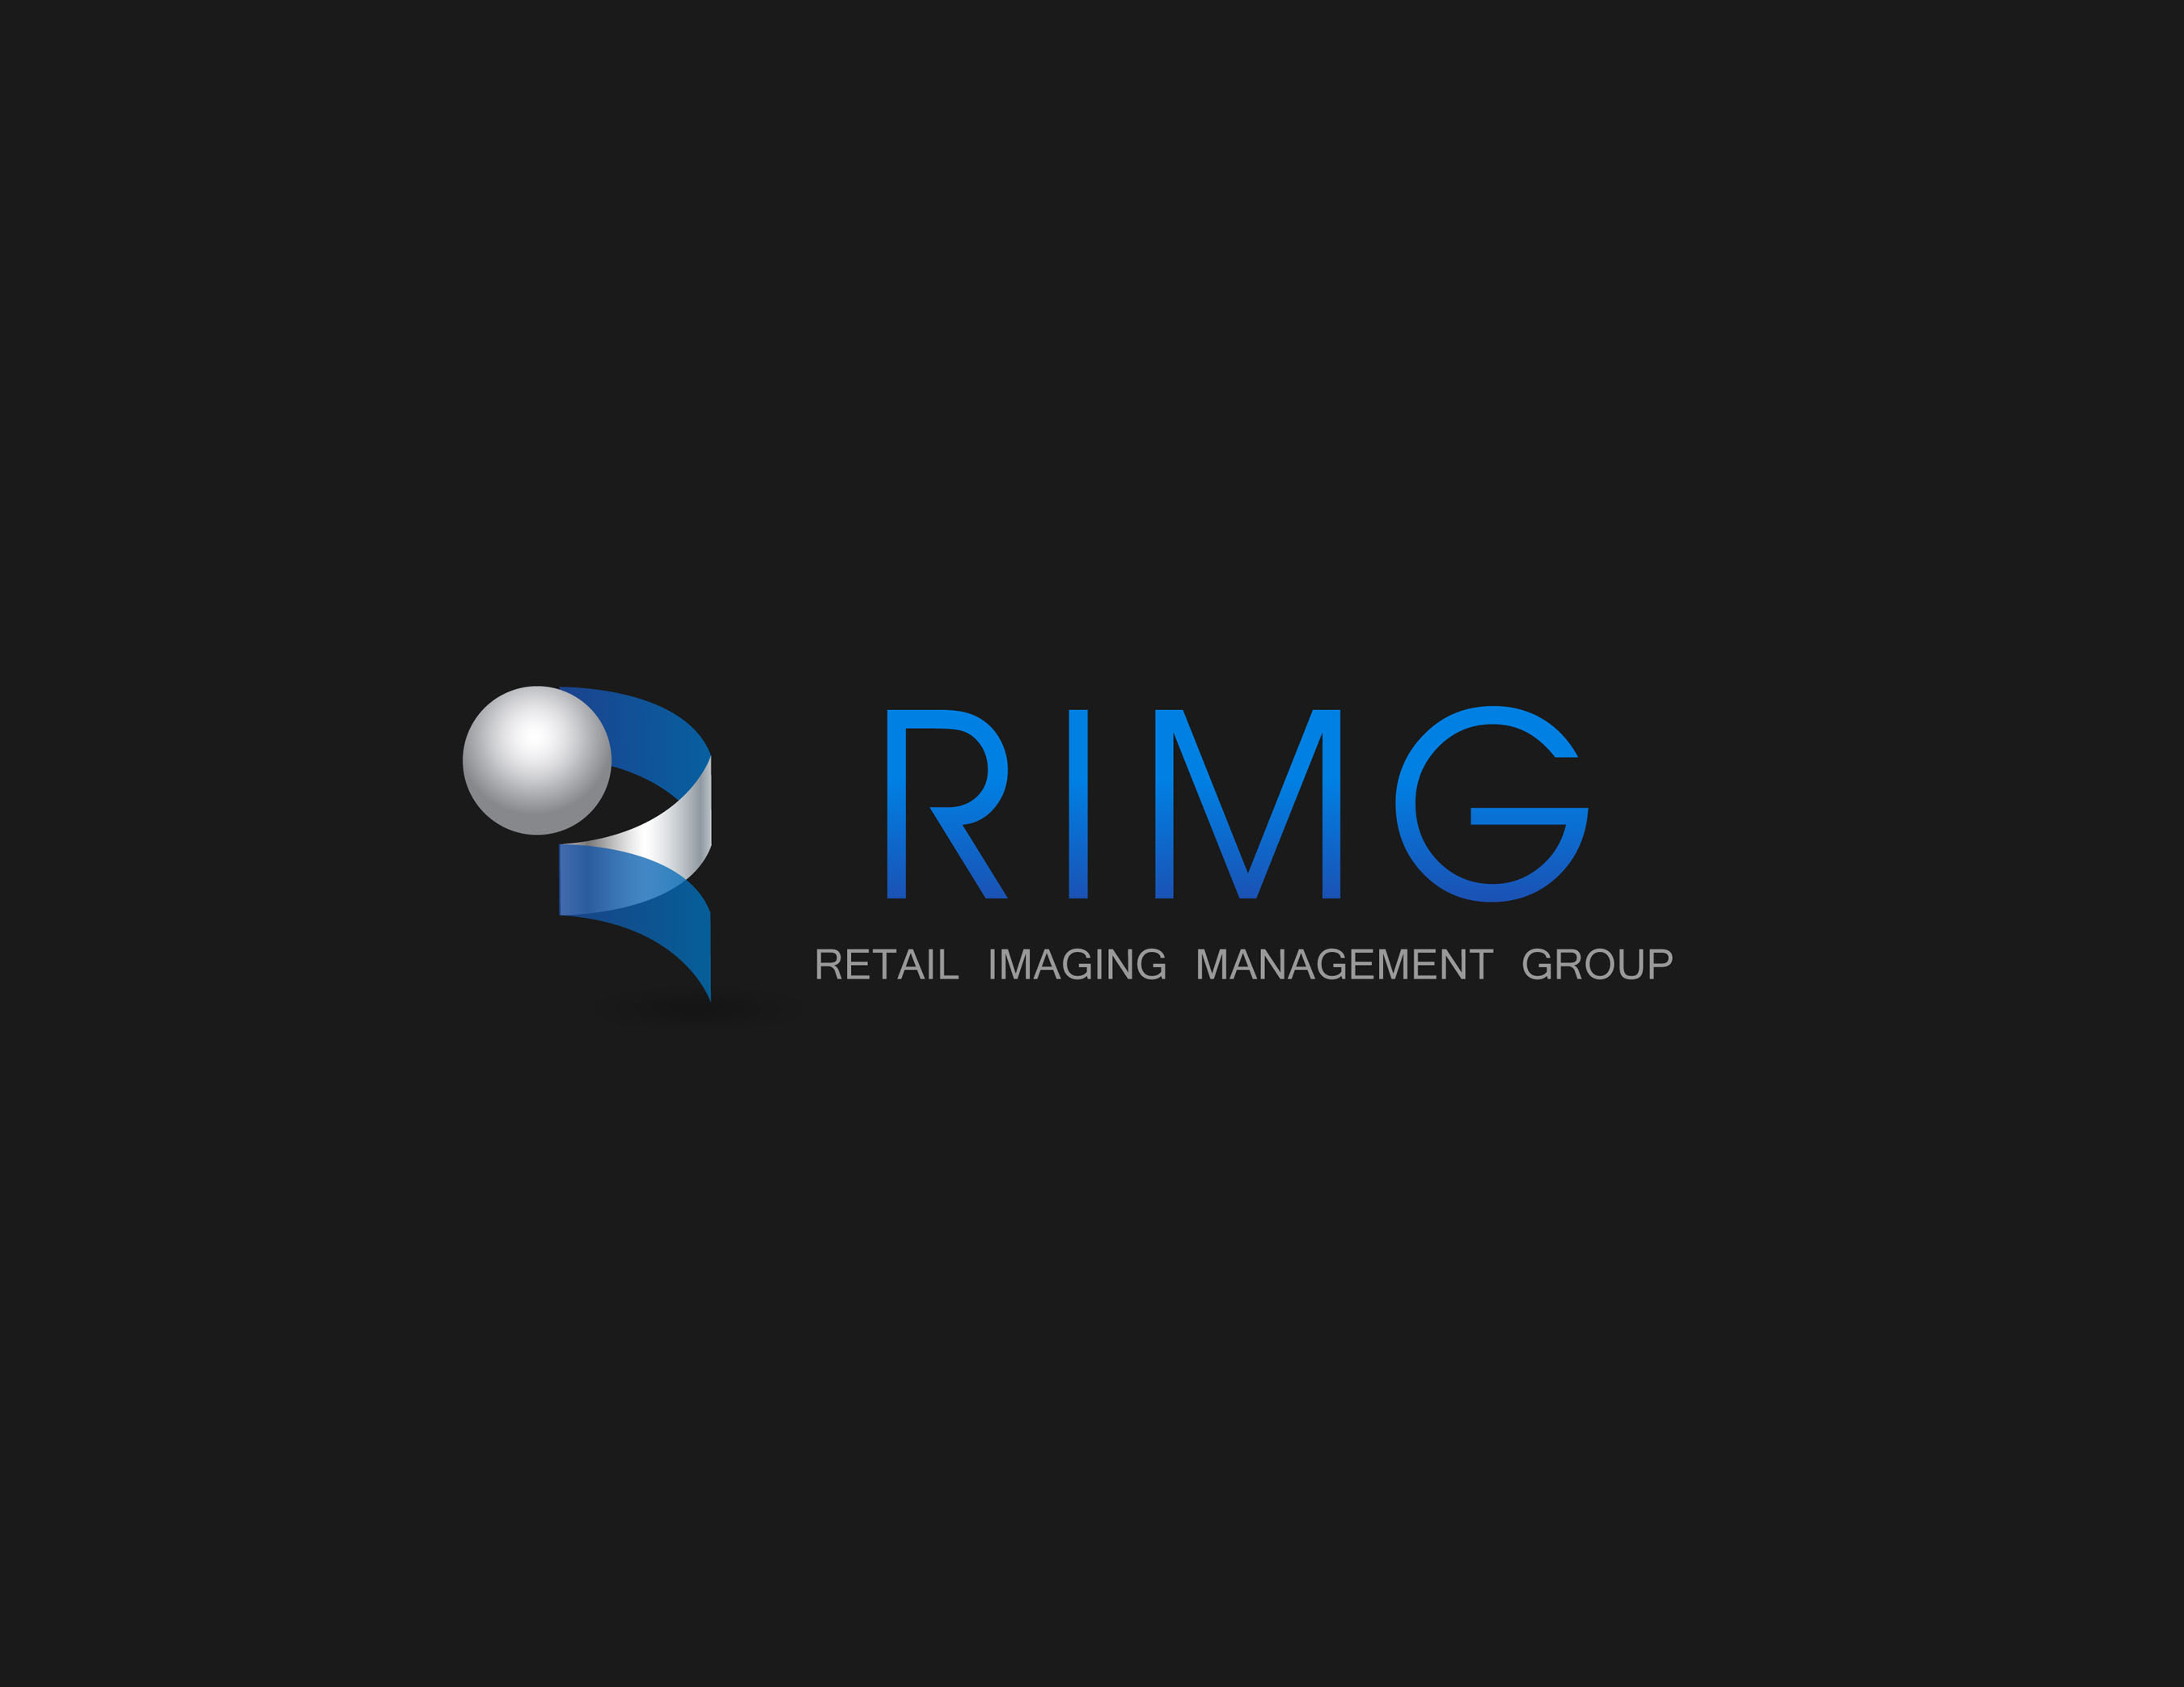 Logo Design by Mark Anthony Moreto Jordan - Entry No. 104 in the Logo Design Contest Creative Logo Design for Retail Imaging Management Group (R.I.M.G.).